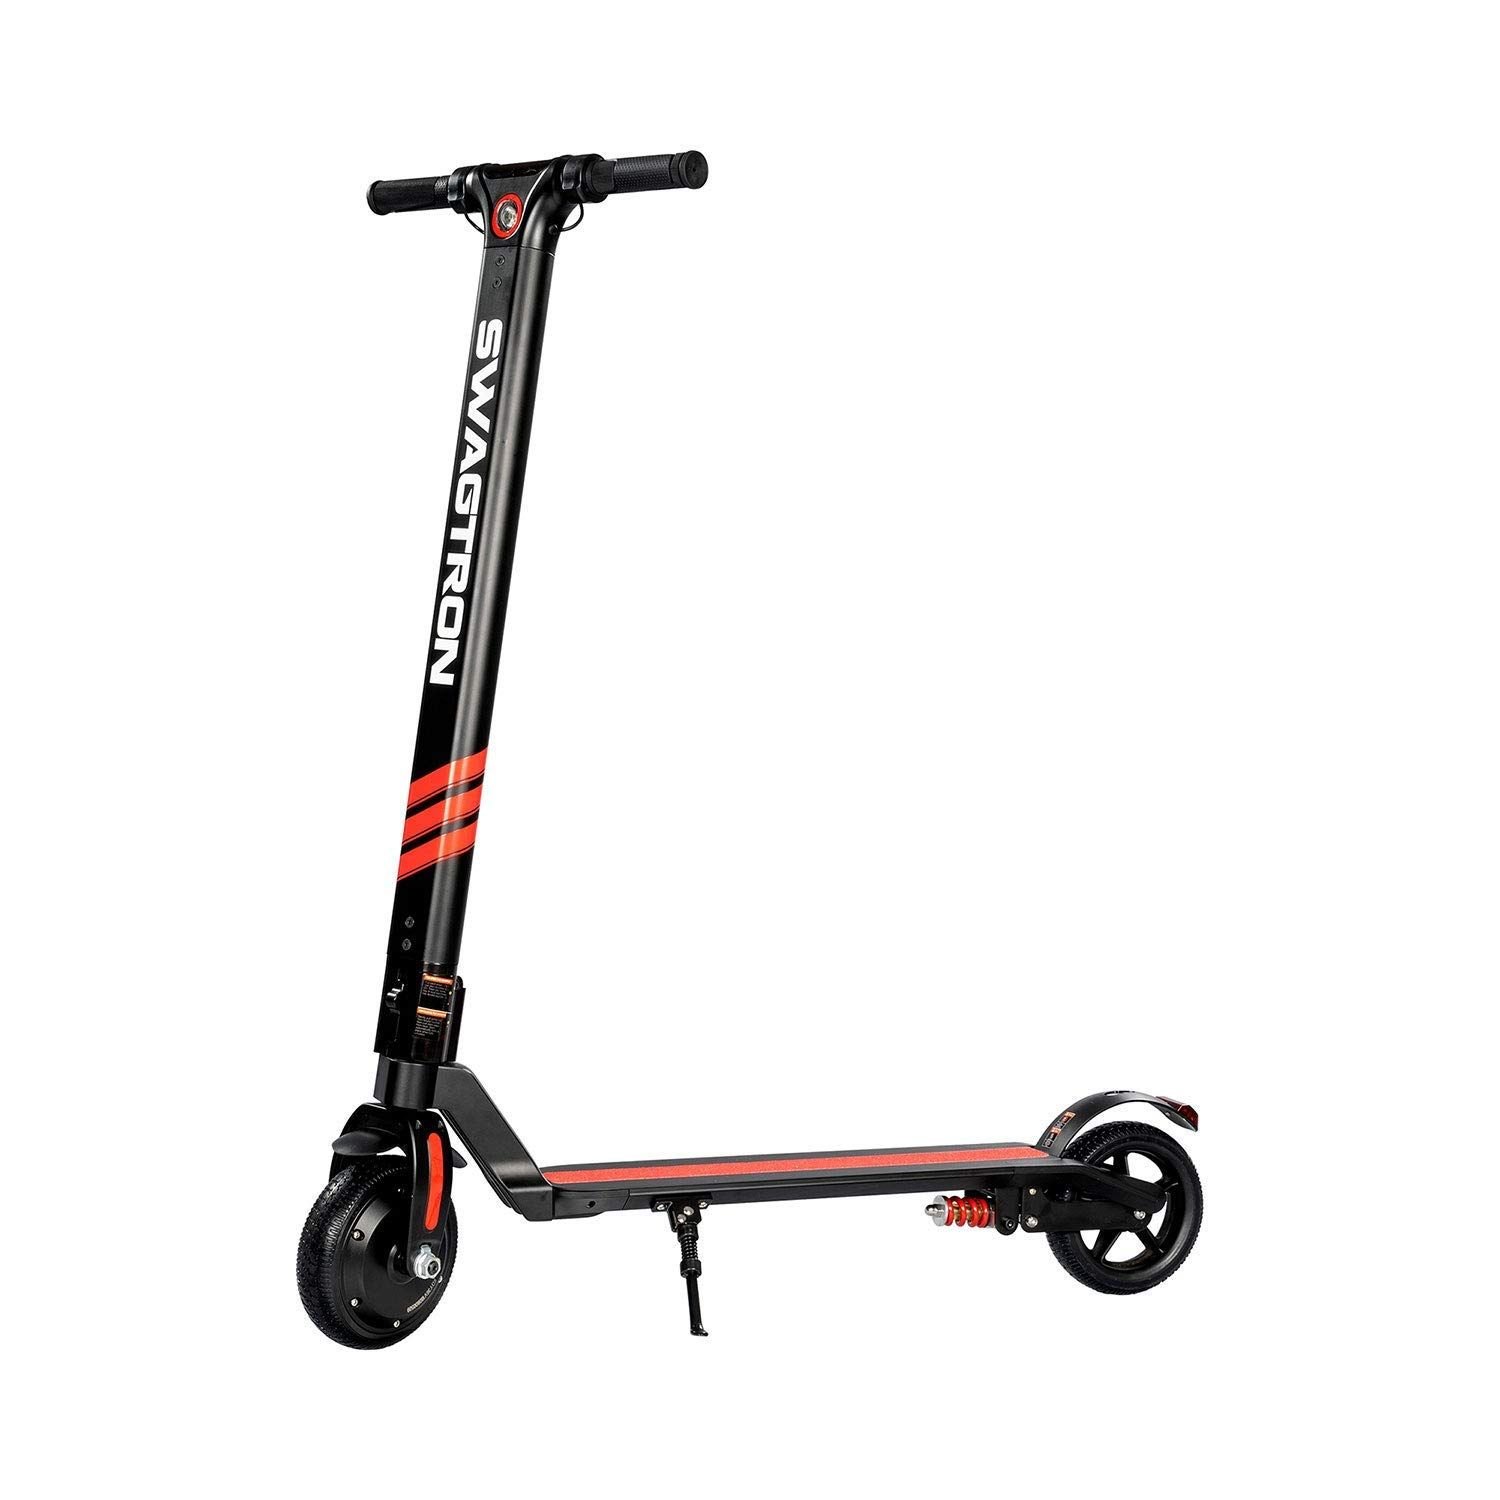 Swagger Pro Foldable Electric Scooter w/Cruise Control